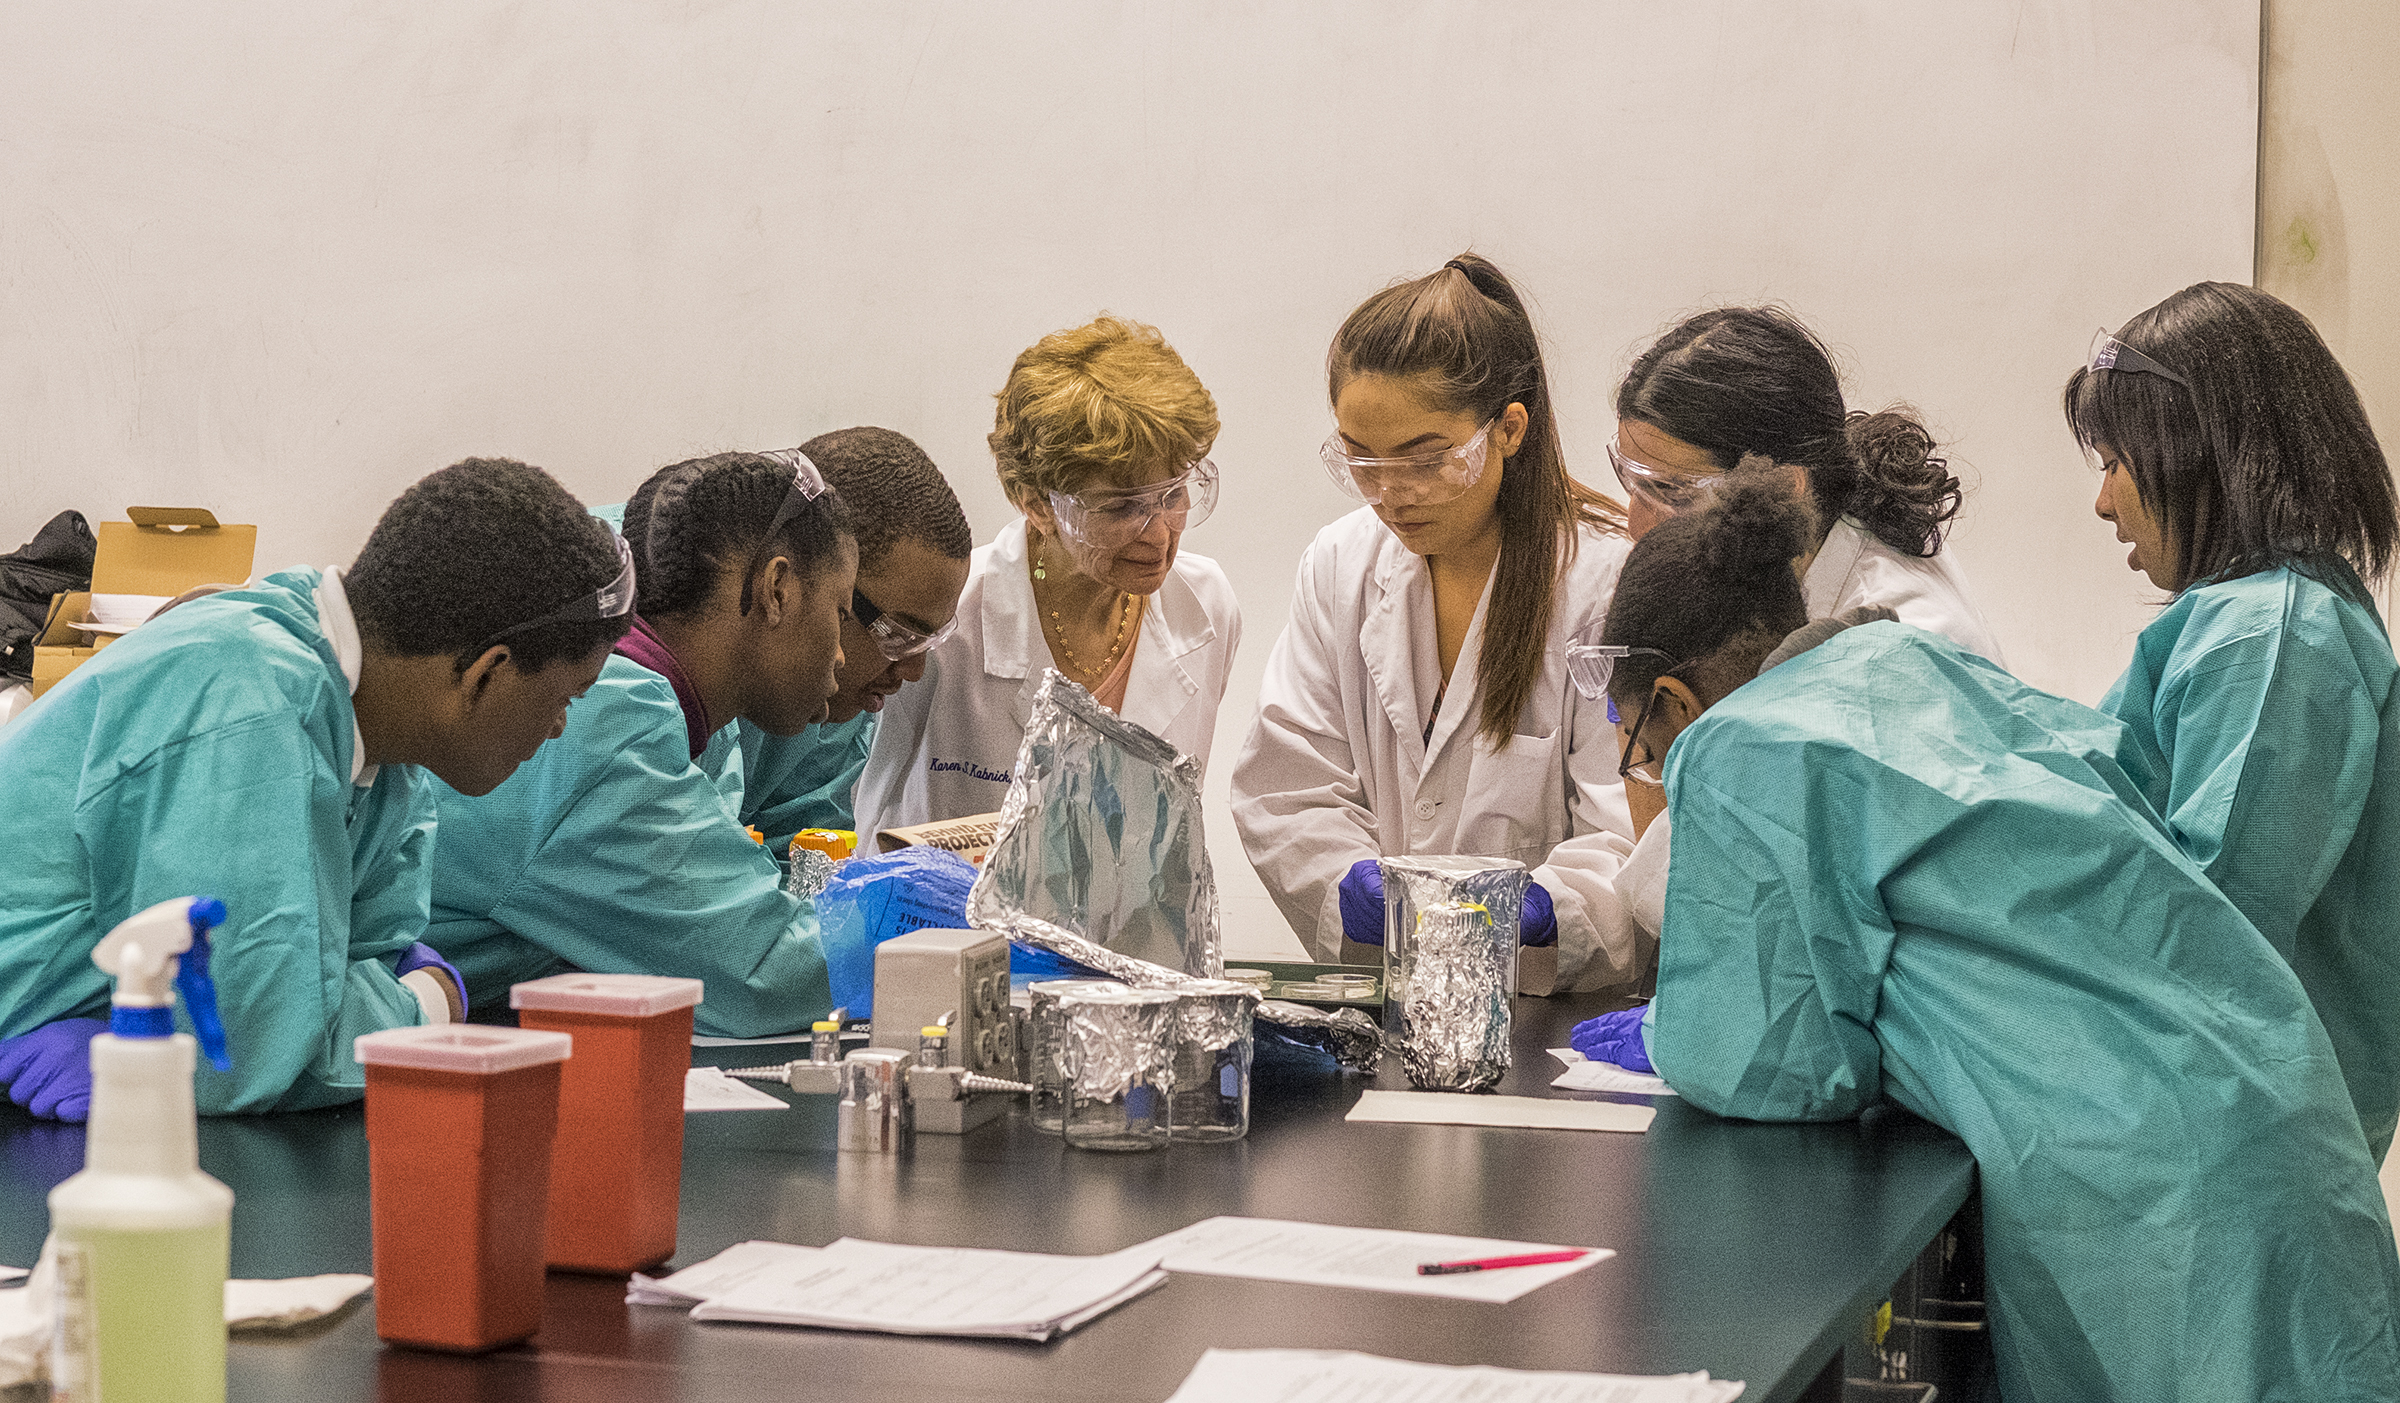 Robeson High has forged partnerships across the city. Here, a group of Robeson students work on an experiment in a Drexel University lab with the help of Drexel faculty and undergraduates.